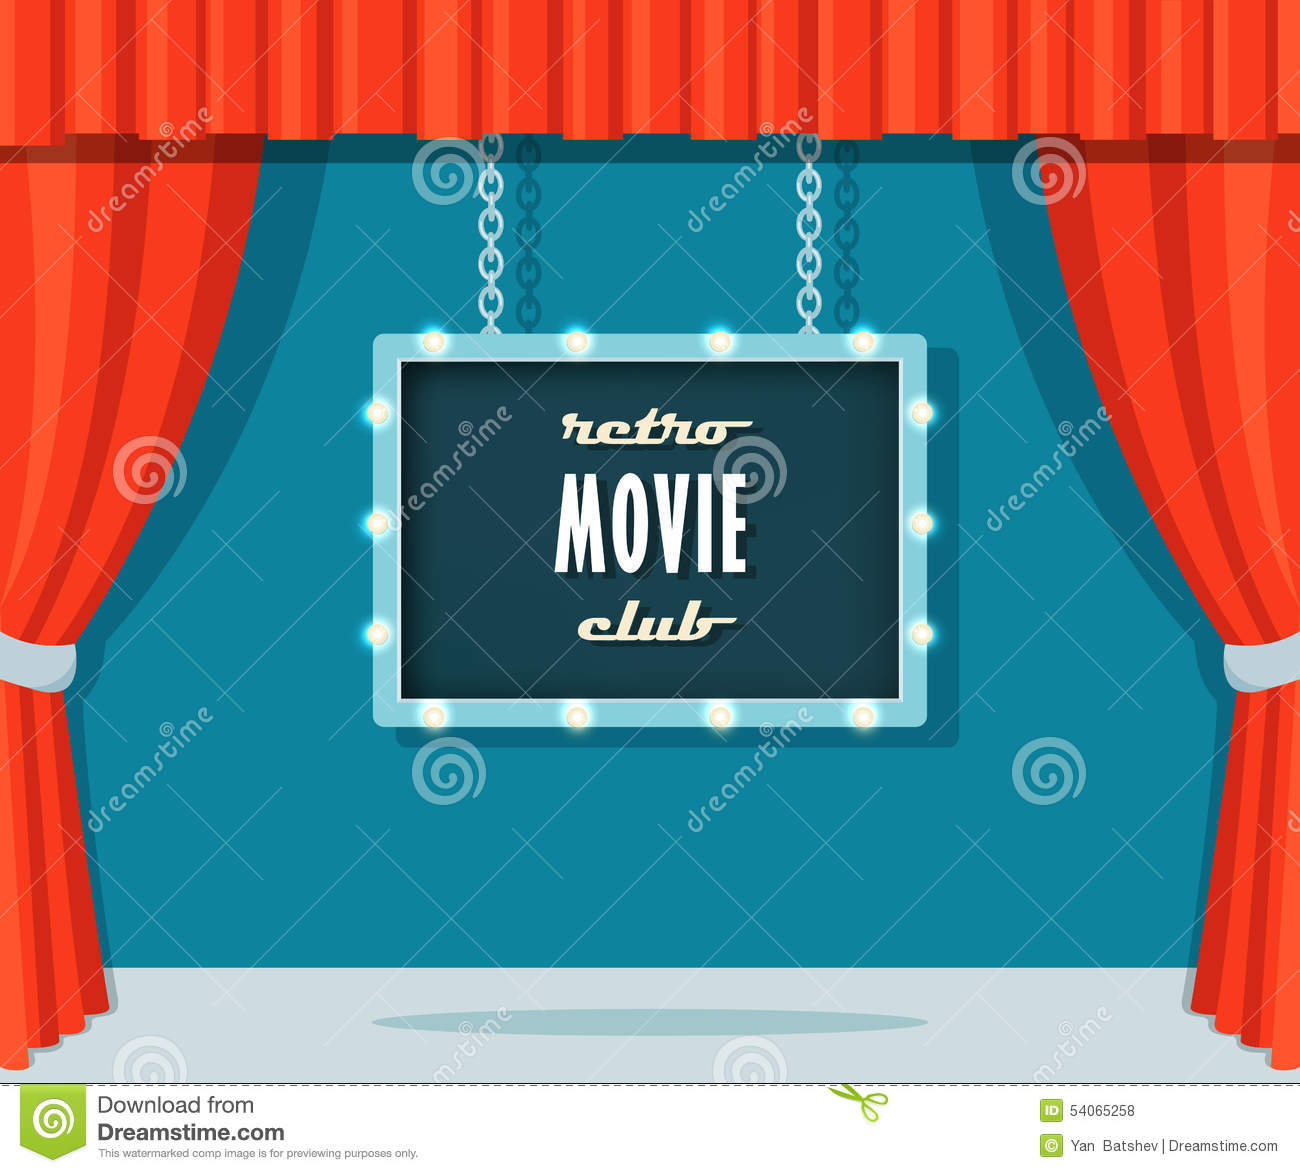 Vintage Stage With Red Curtains And Marquee Sign Retro Movie Club Stock Vector Image 54065258